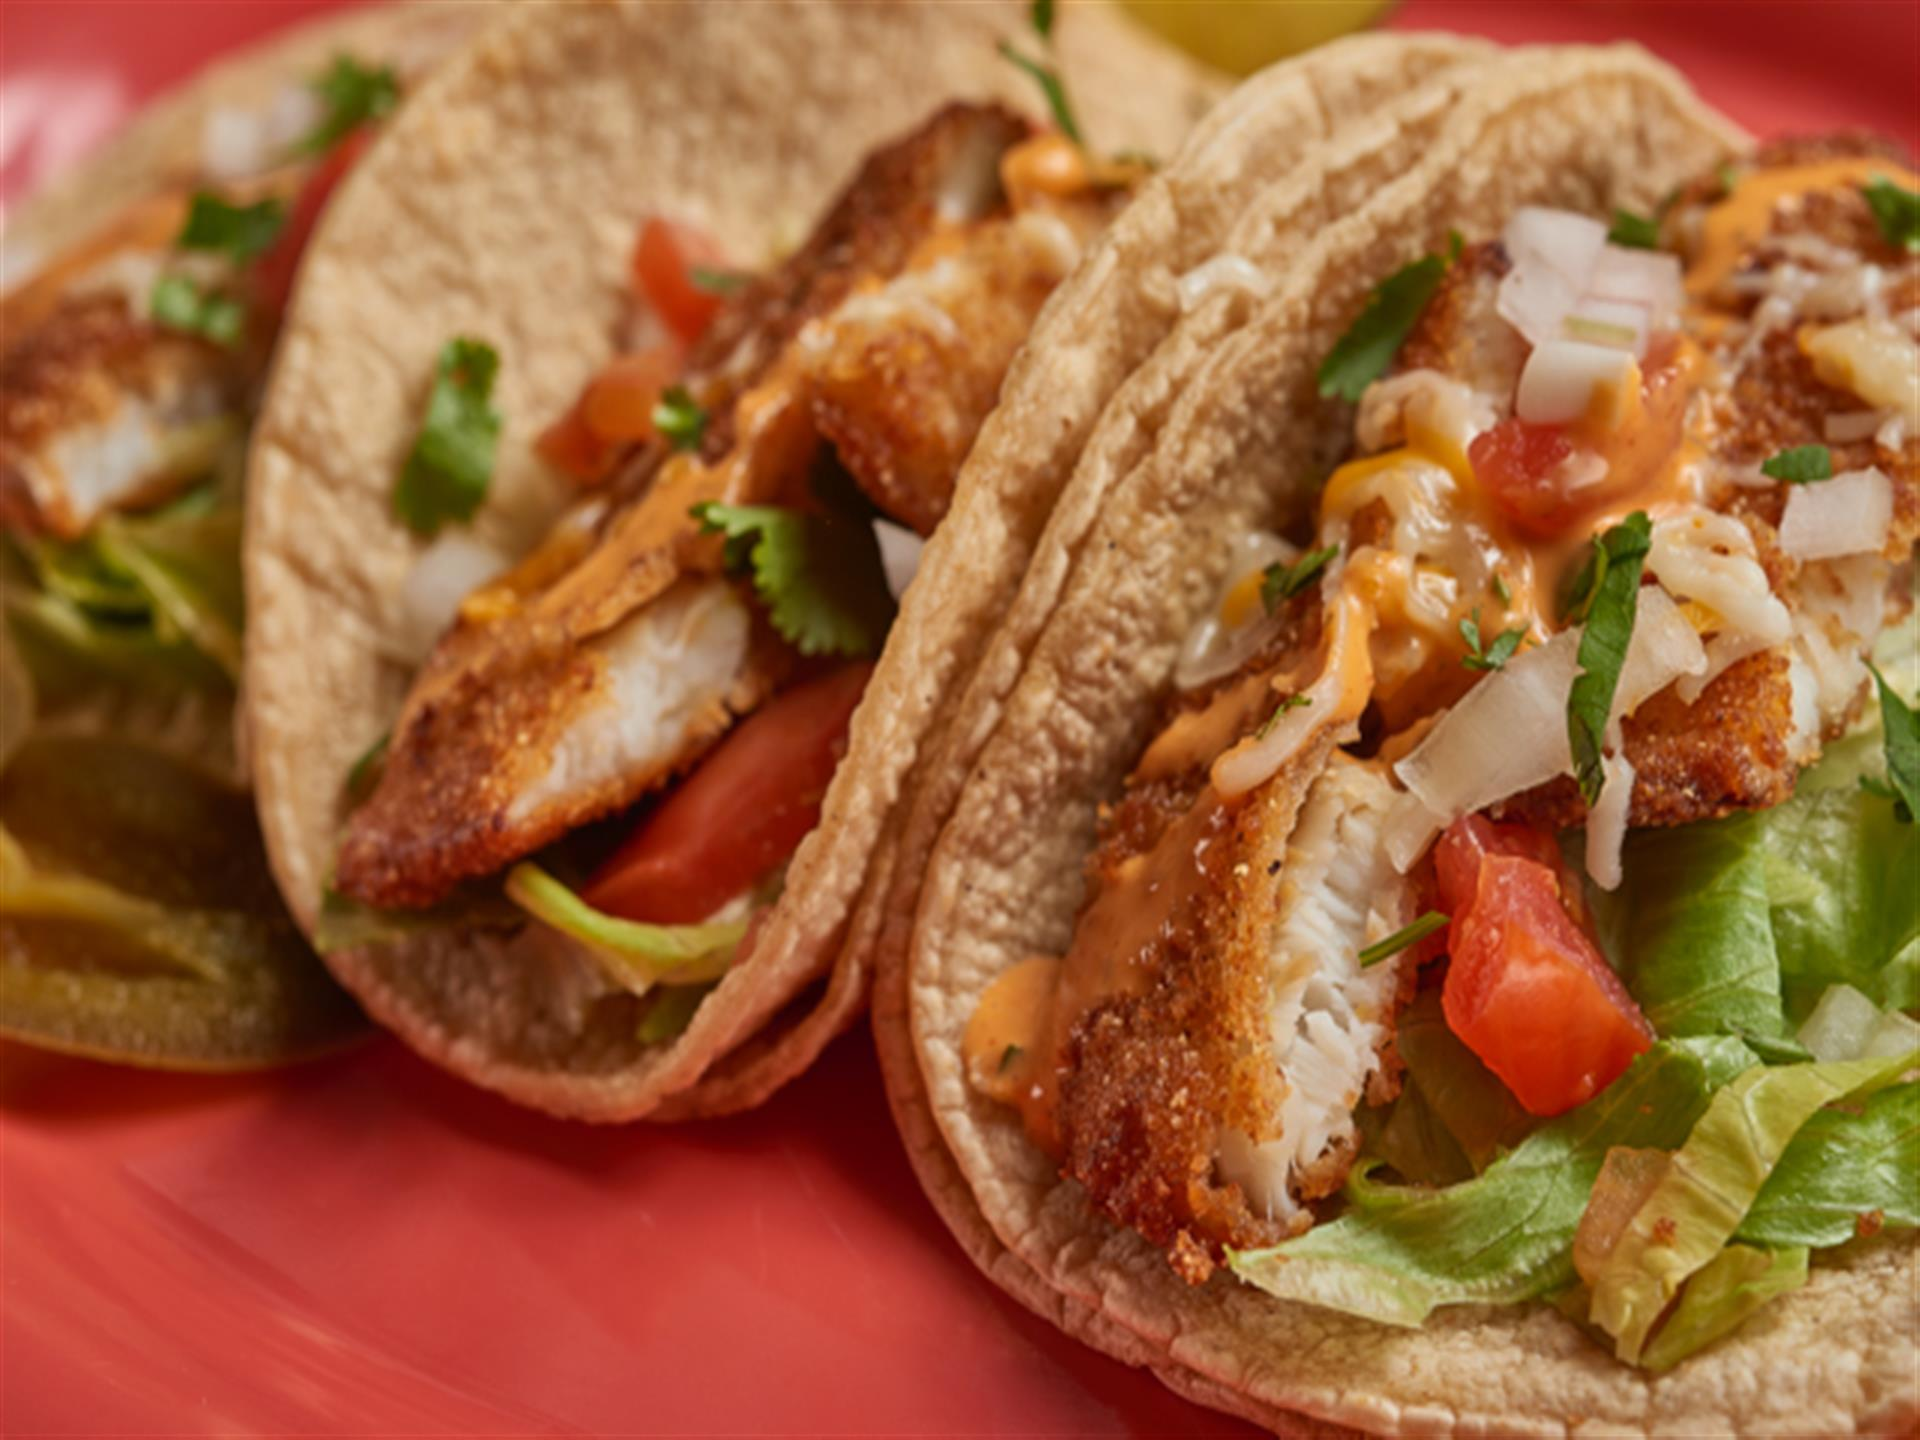 Three marinated chicken tacos with tomatoes and jalapeno slices.